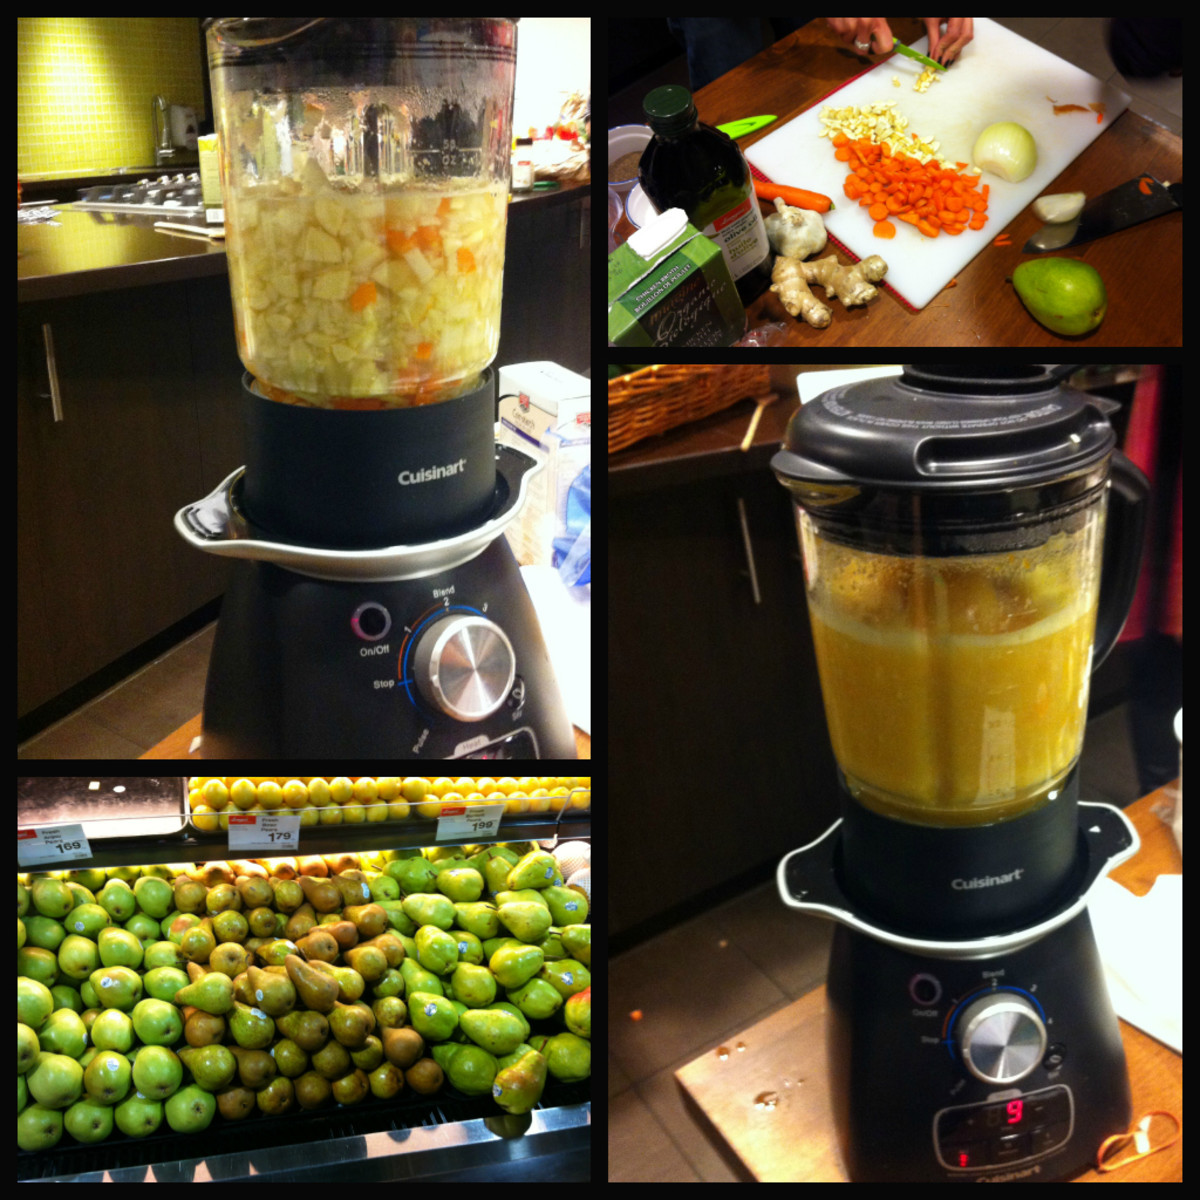 Photos from the Blissdom Canada Cuisinart Soup Challenge. Our team made a Carrot Parsnip Pear Ginger Soup.